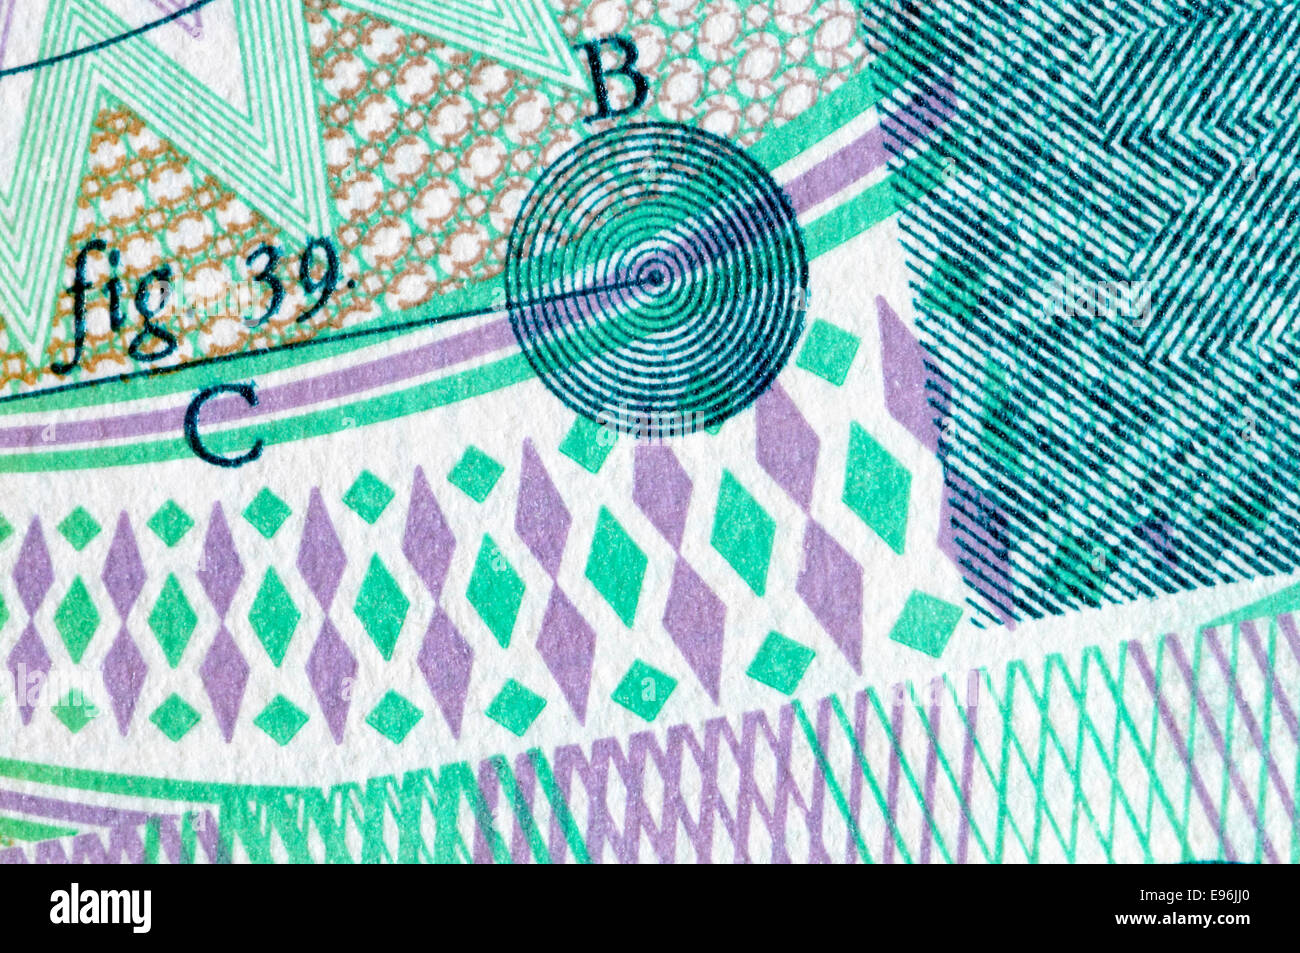 detail-from-a-1993-croatian-100000-dinar